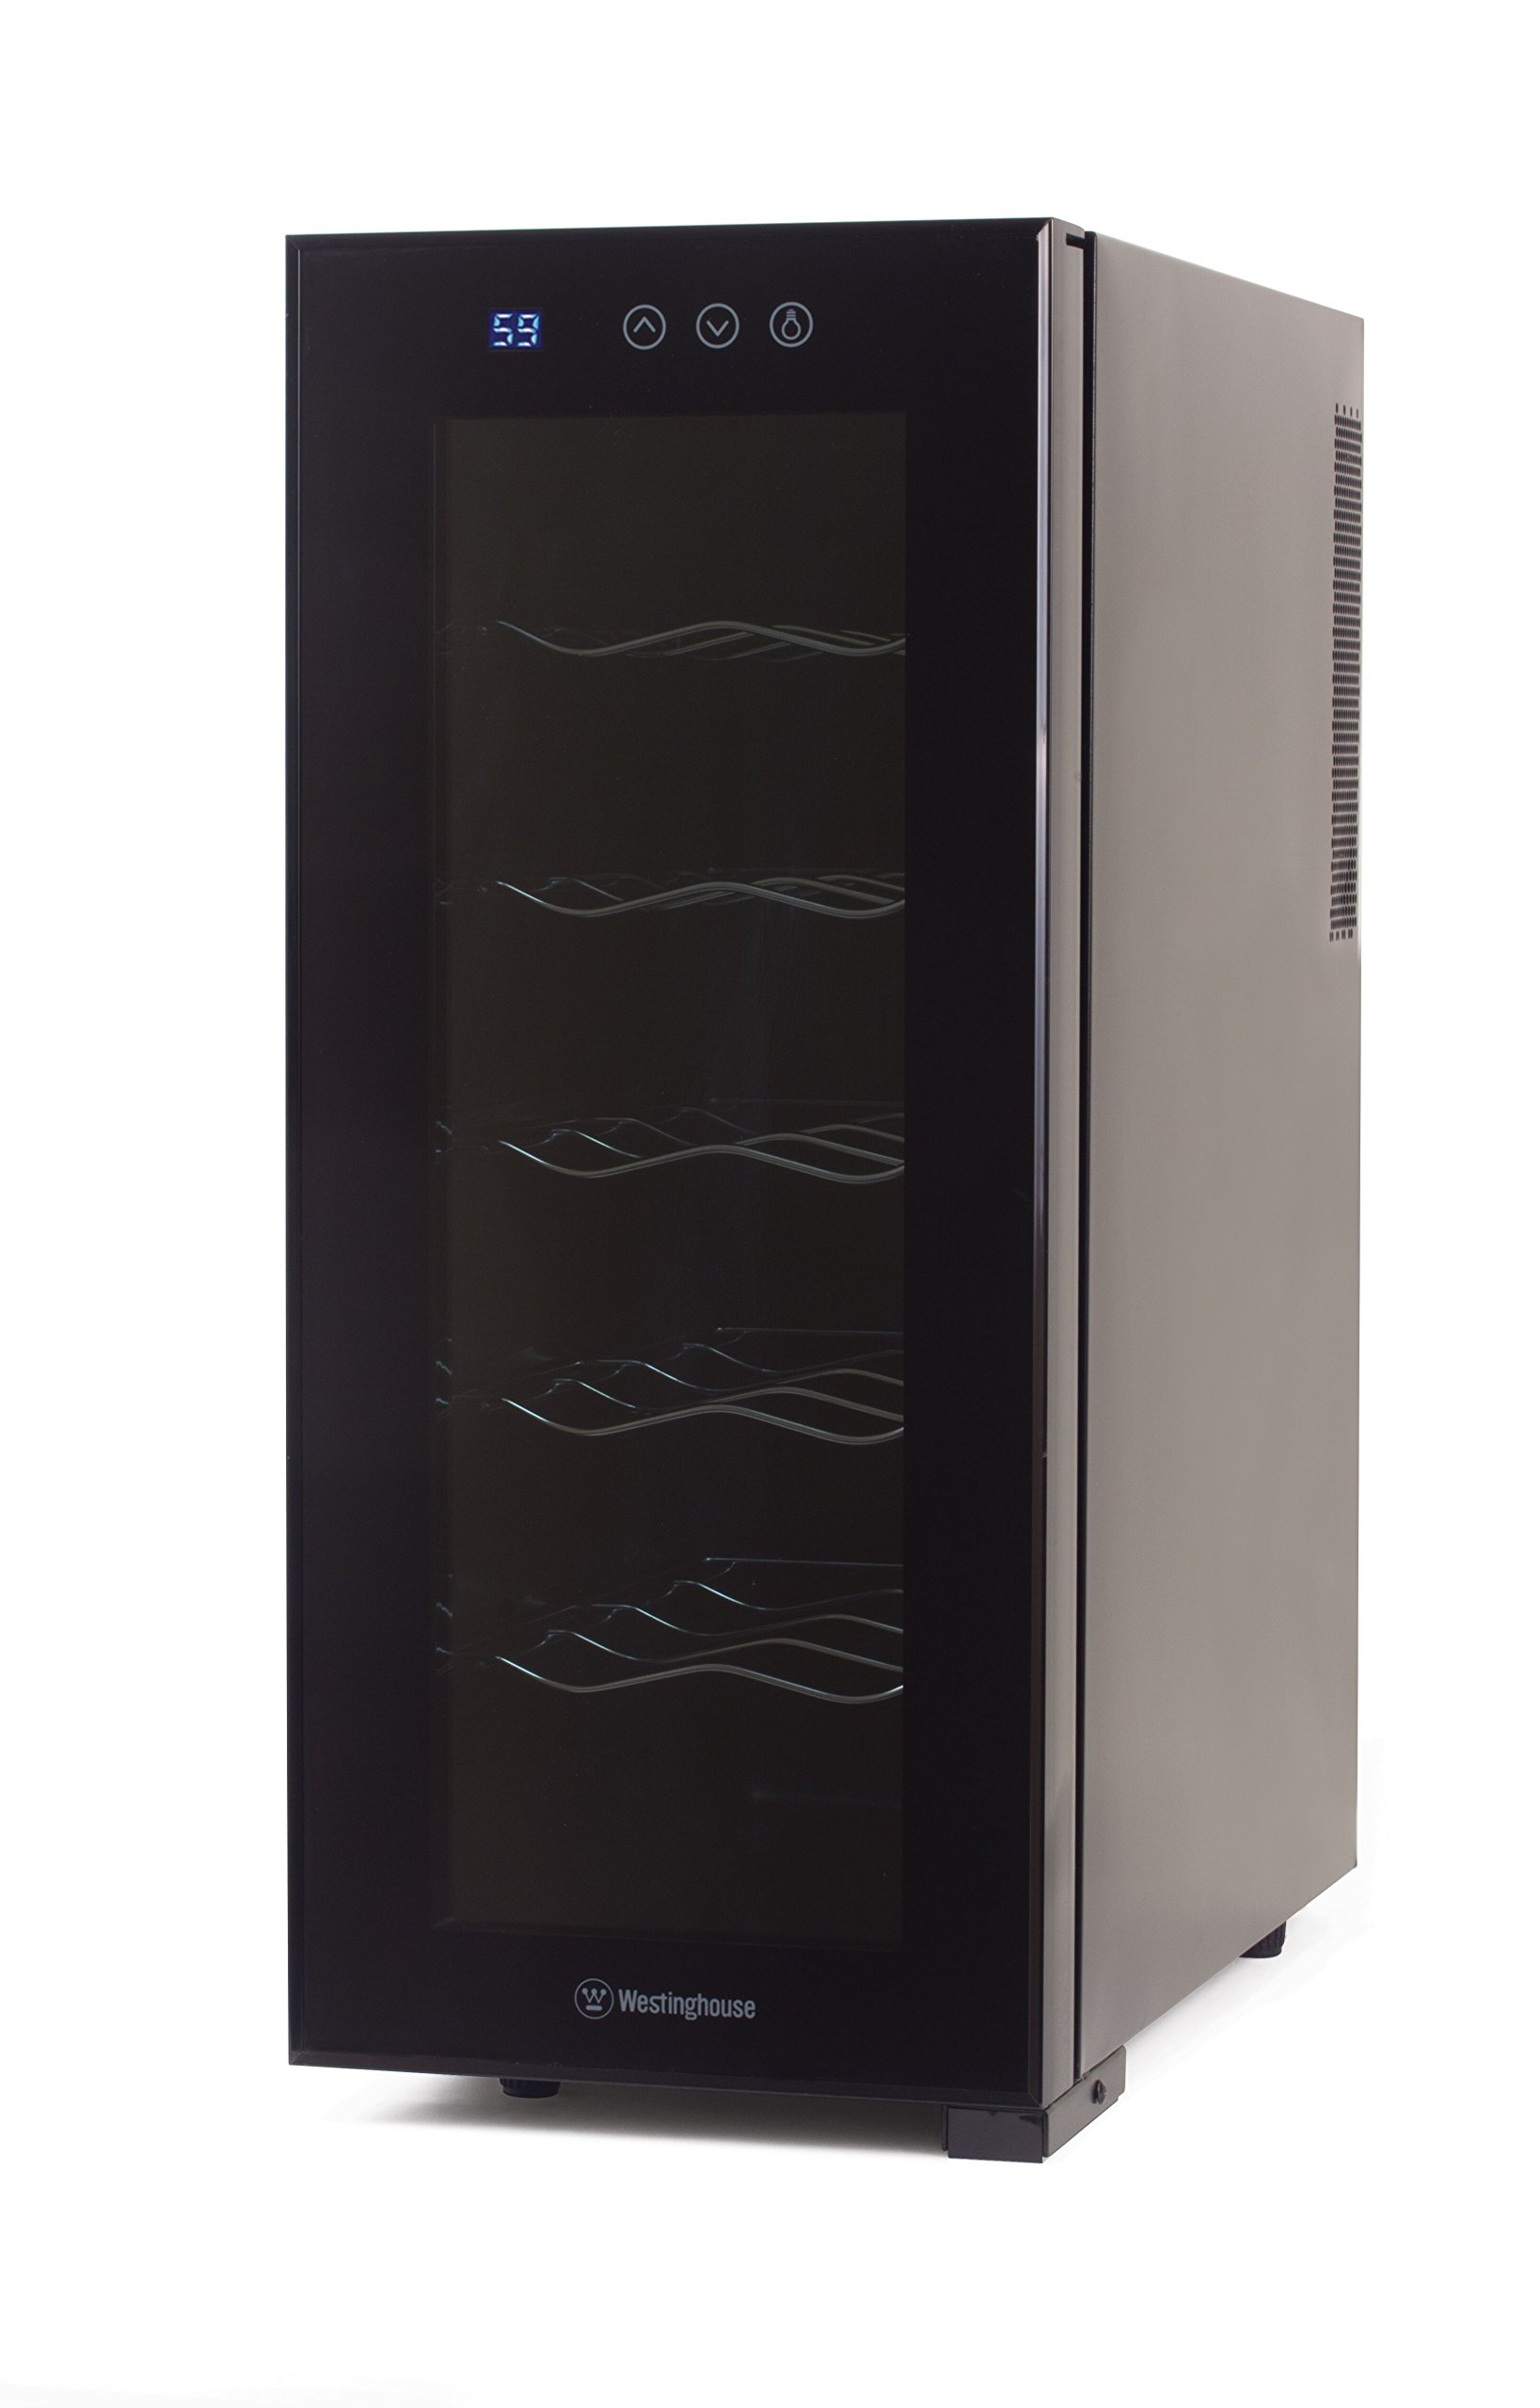 Westinghouse WWT120TB Thermal Electric 12 Bottle Wine Cellar with Touch Panel Adjustable Thermostat and Digital Read Out, Black by Westinghouse